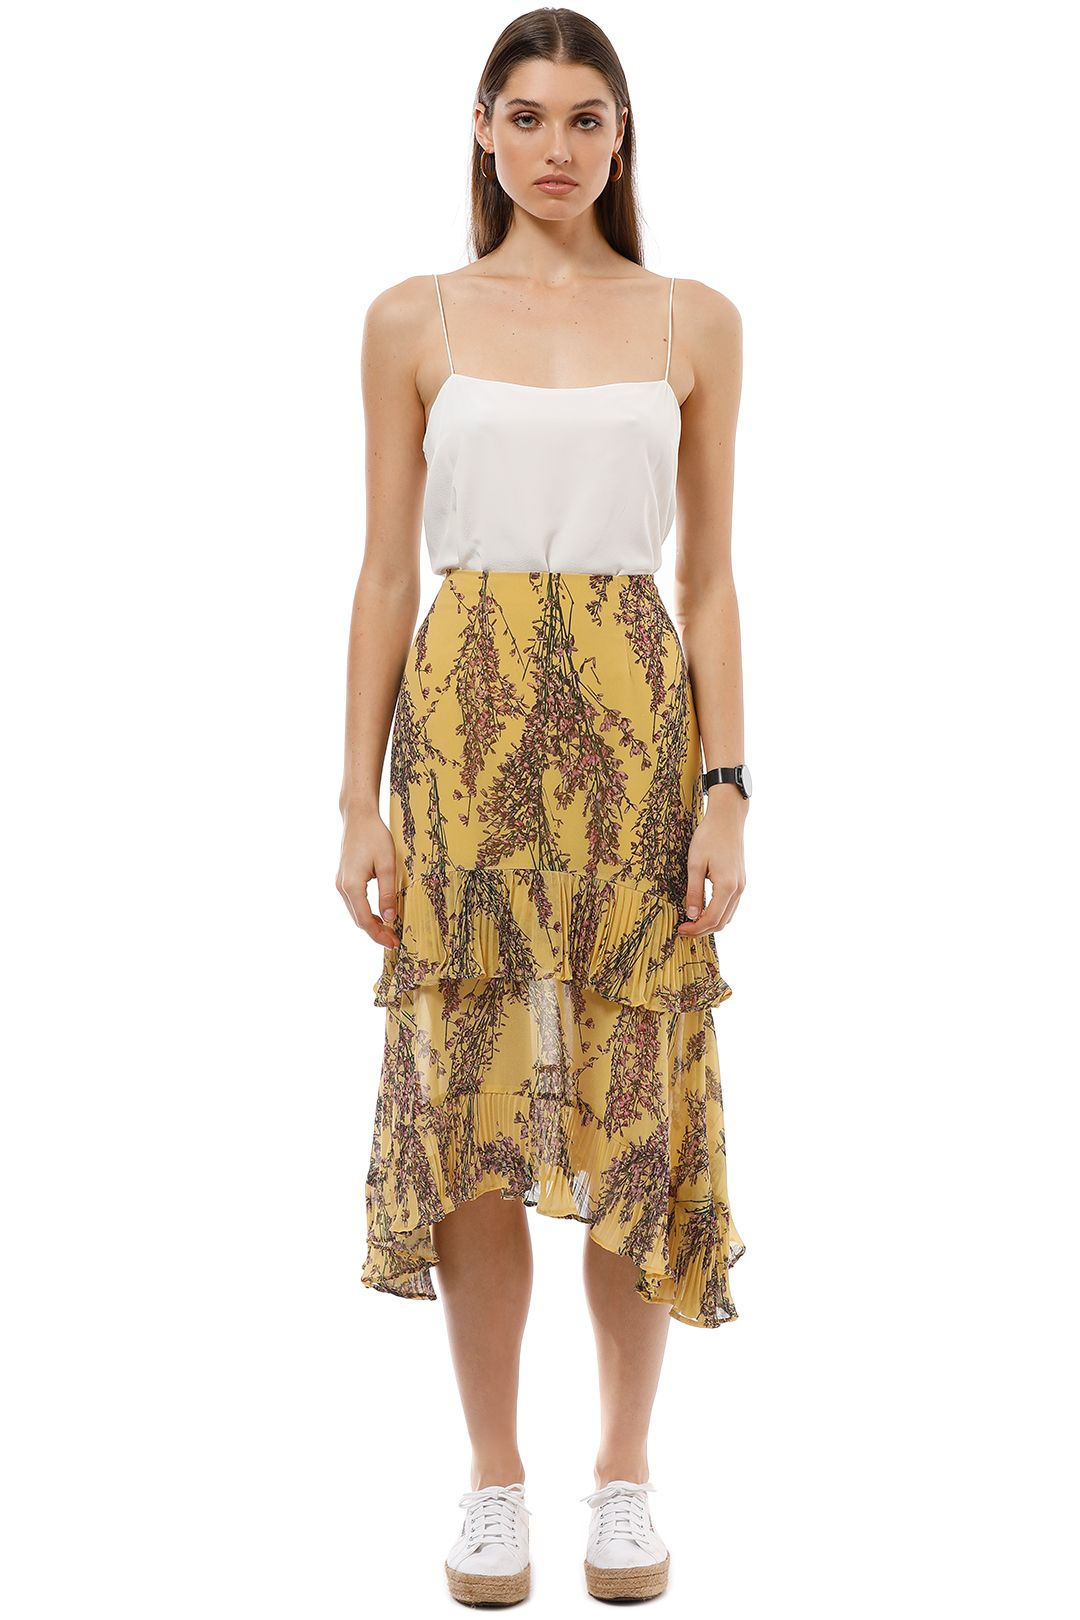 Keepsake the Label - Light Up Skirt - Golden Yellow - Front